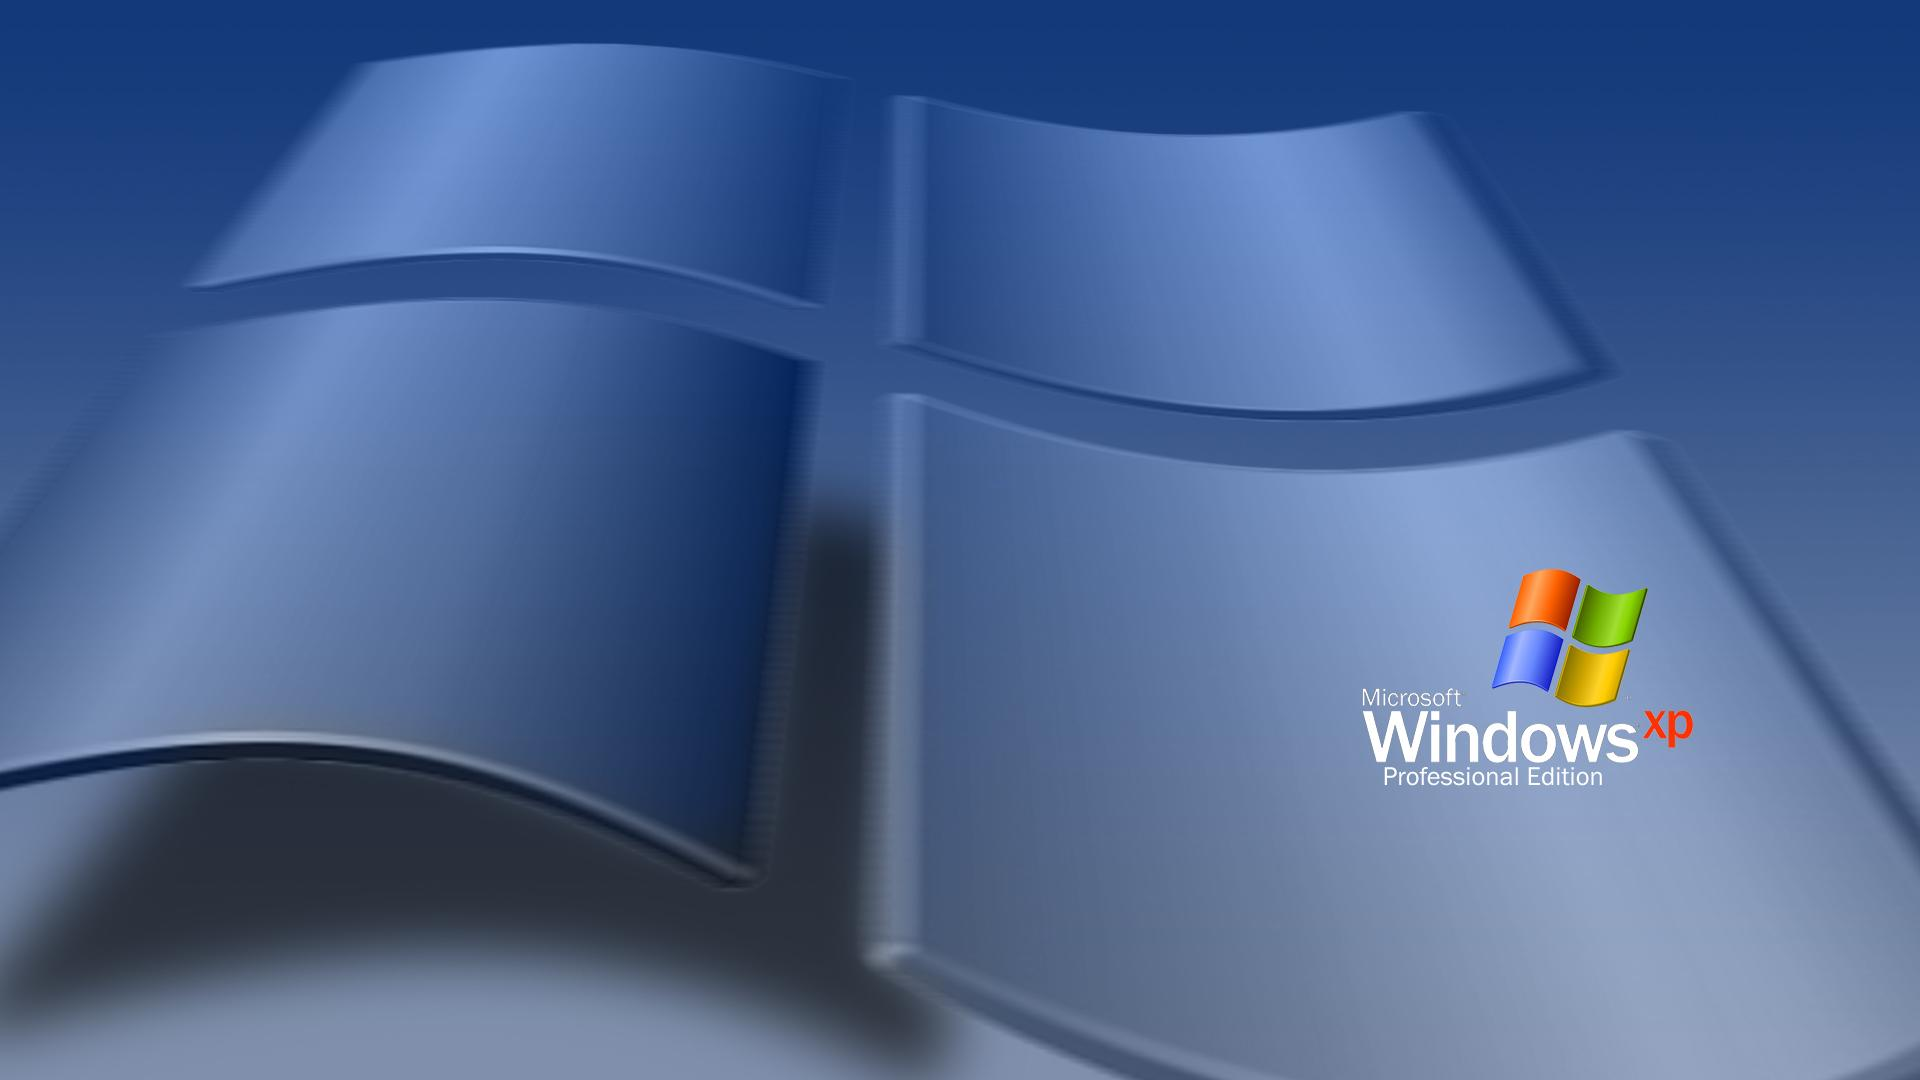 windows xp professional wallpaper